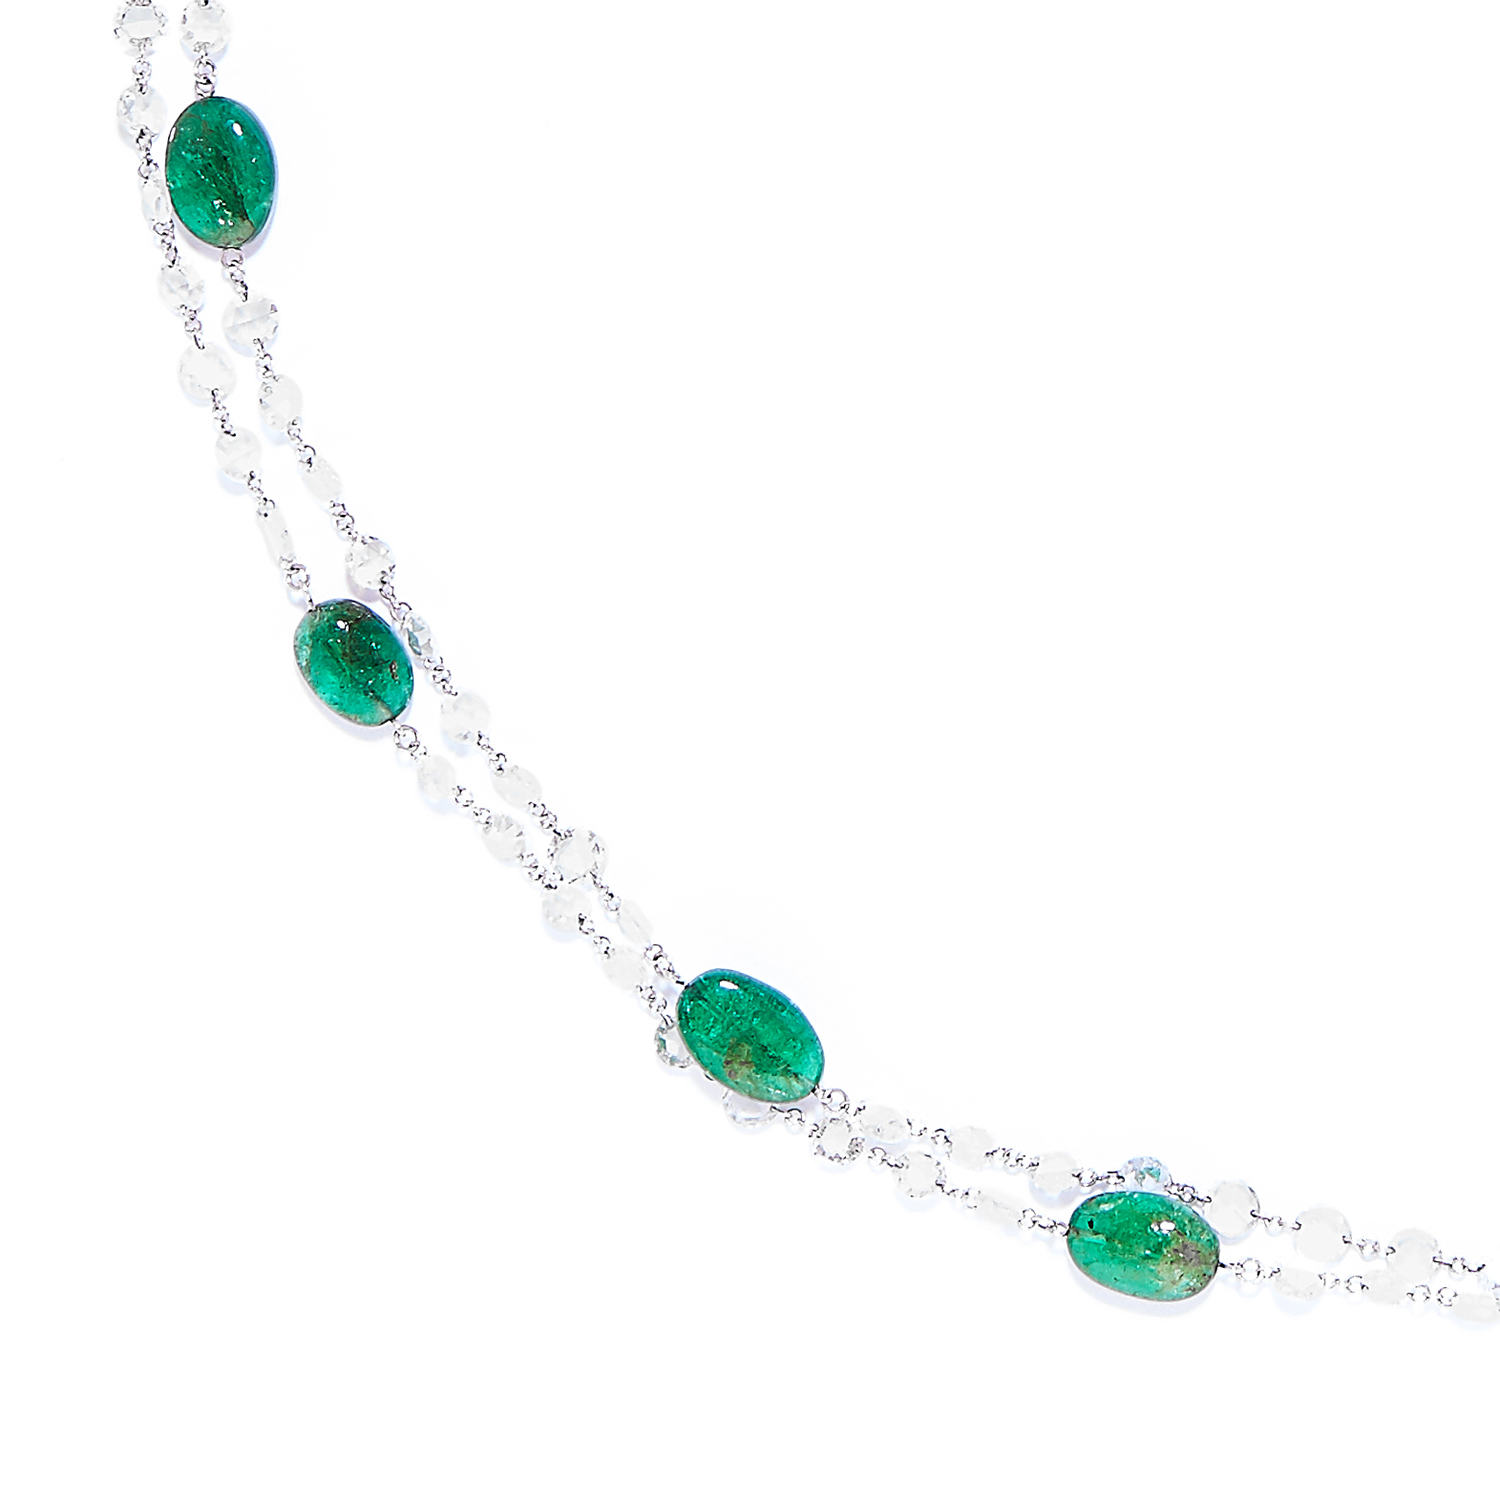 EMERALD AND DIAMOND NECKLACE in 18ct white gold, comprising of alternating polished emerald beads - Bild 2 aus 3